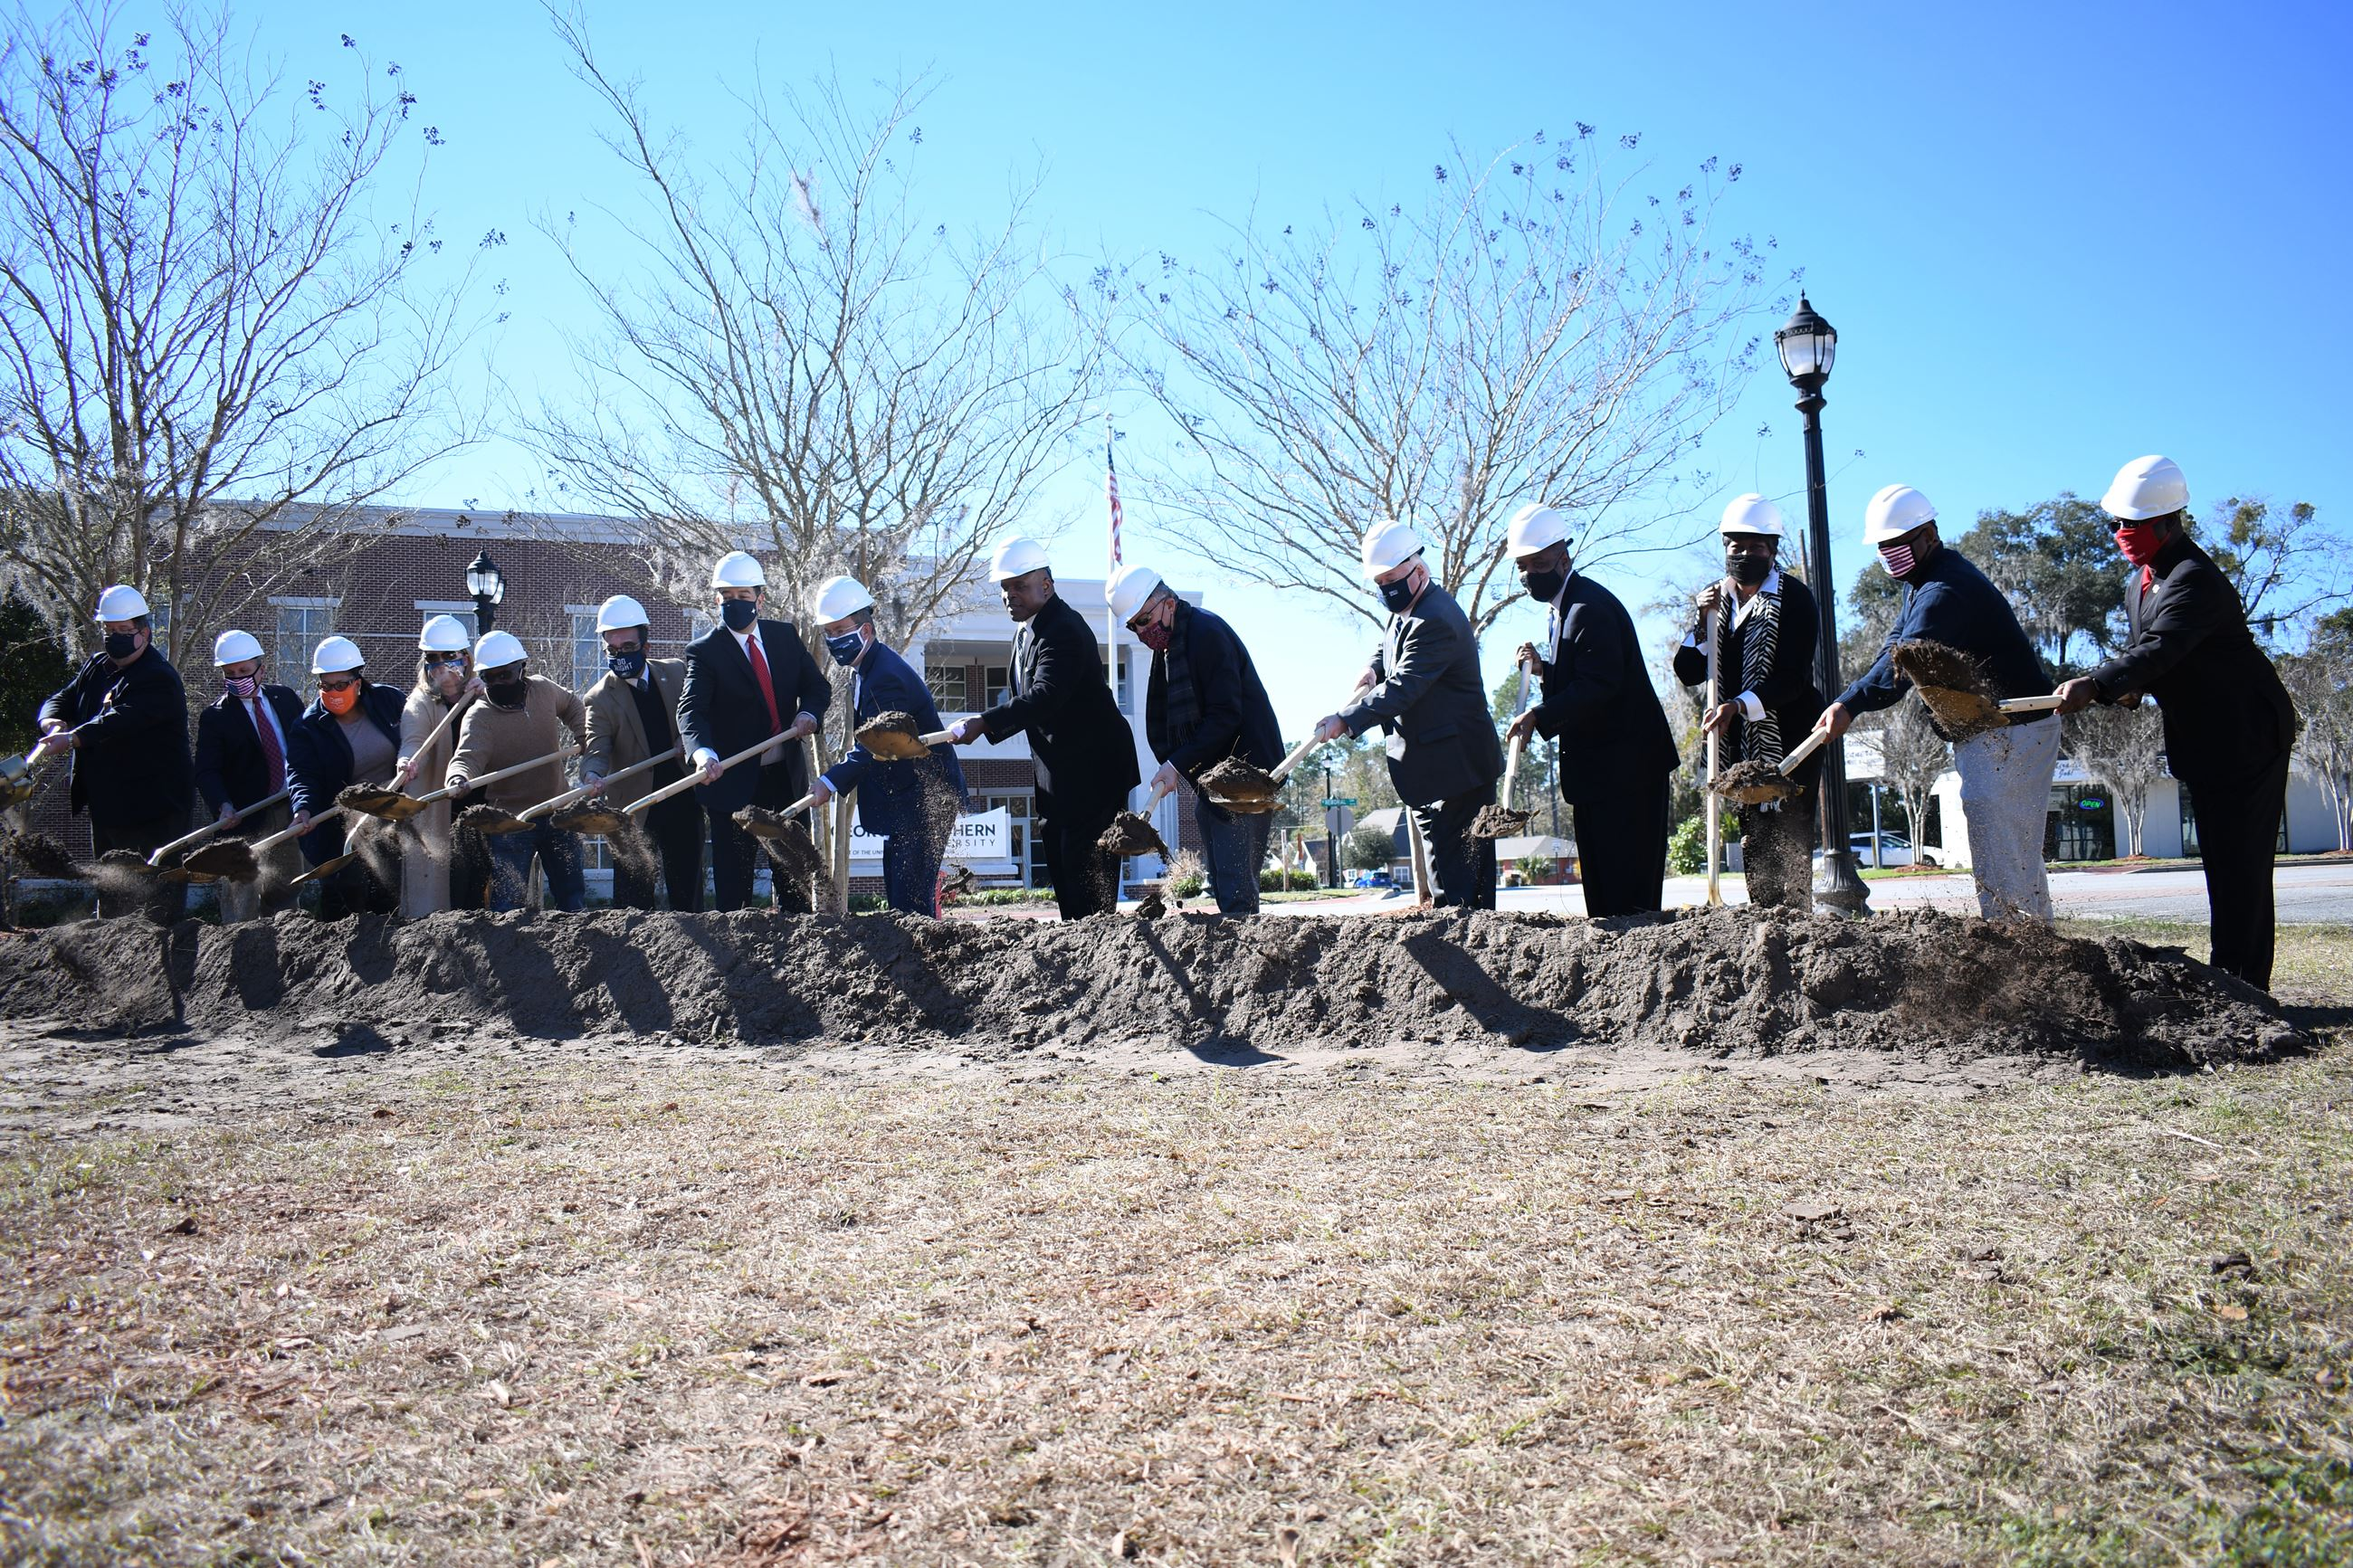 Leaders break ground on a new small business incubator in Downtown Hinesville.